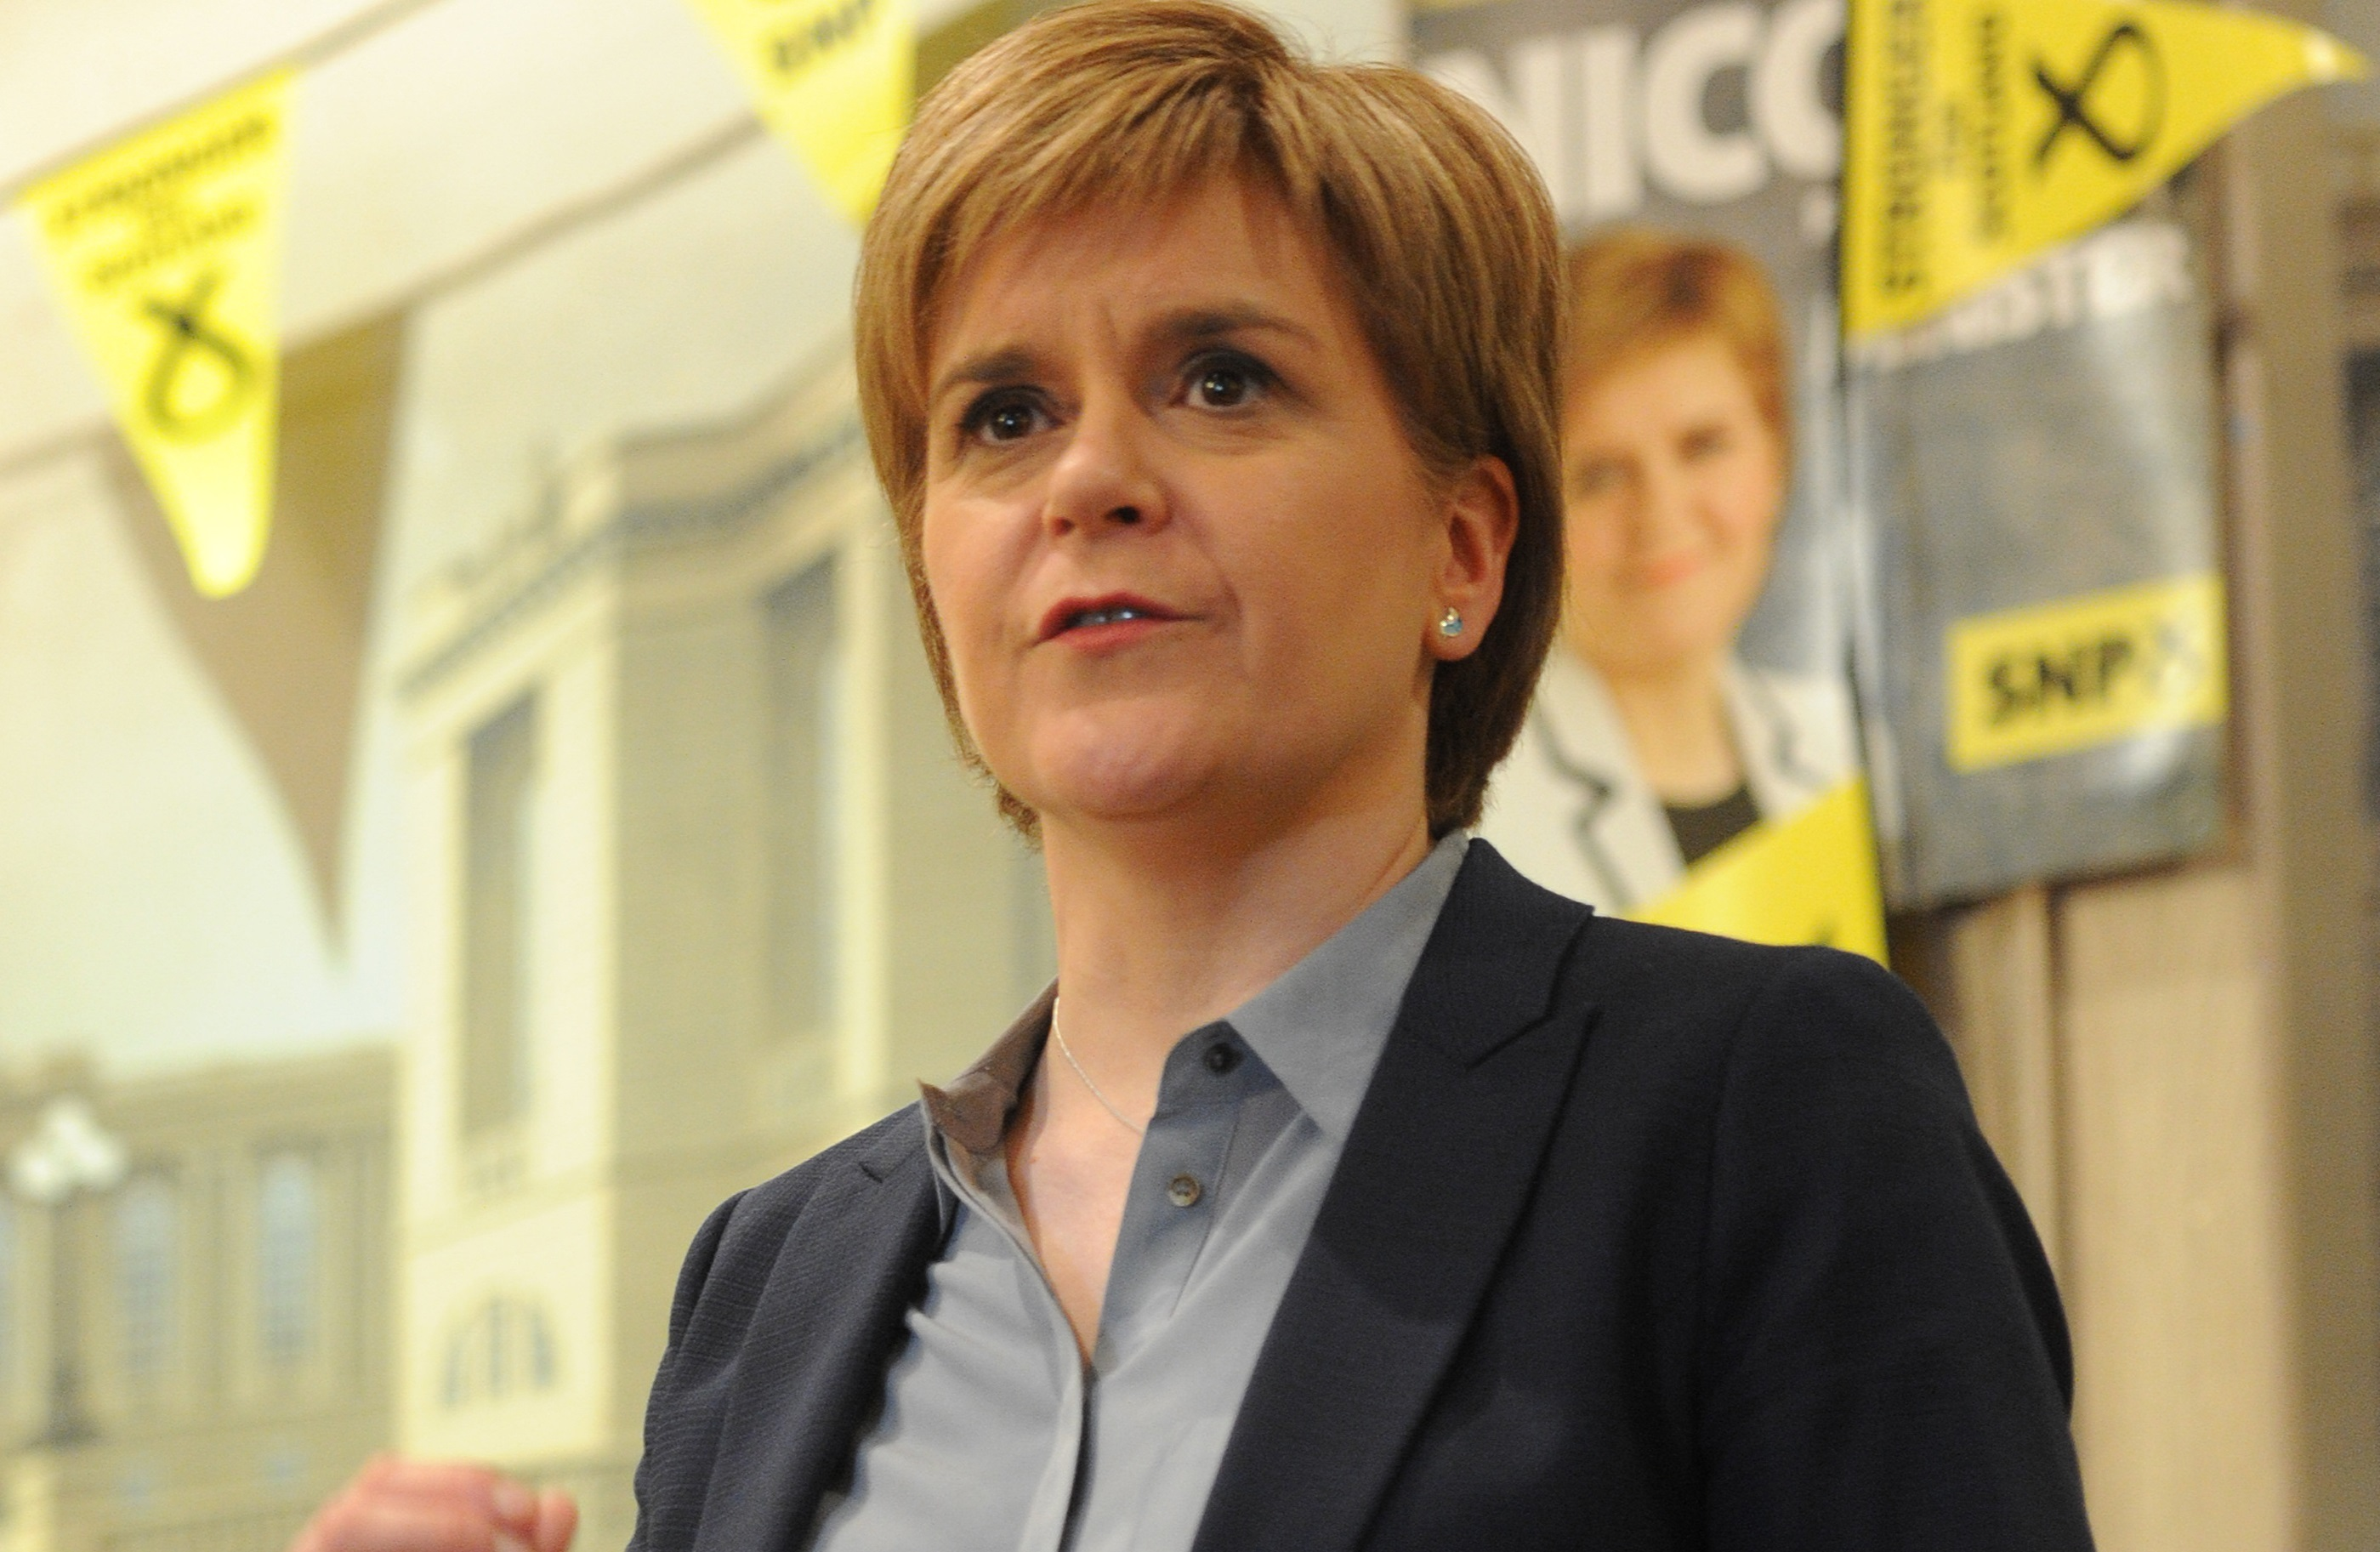 Nicola Sturgeon (Kim Cessford / DC Thomson)